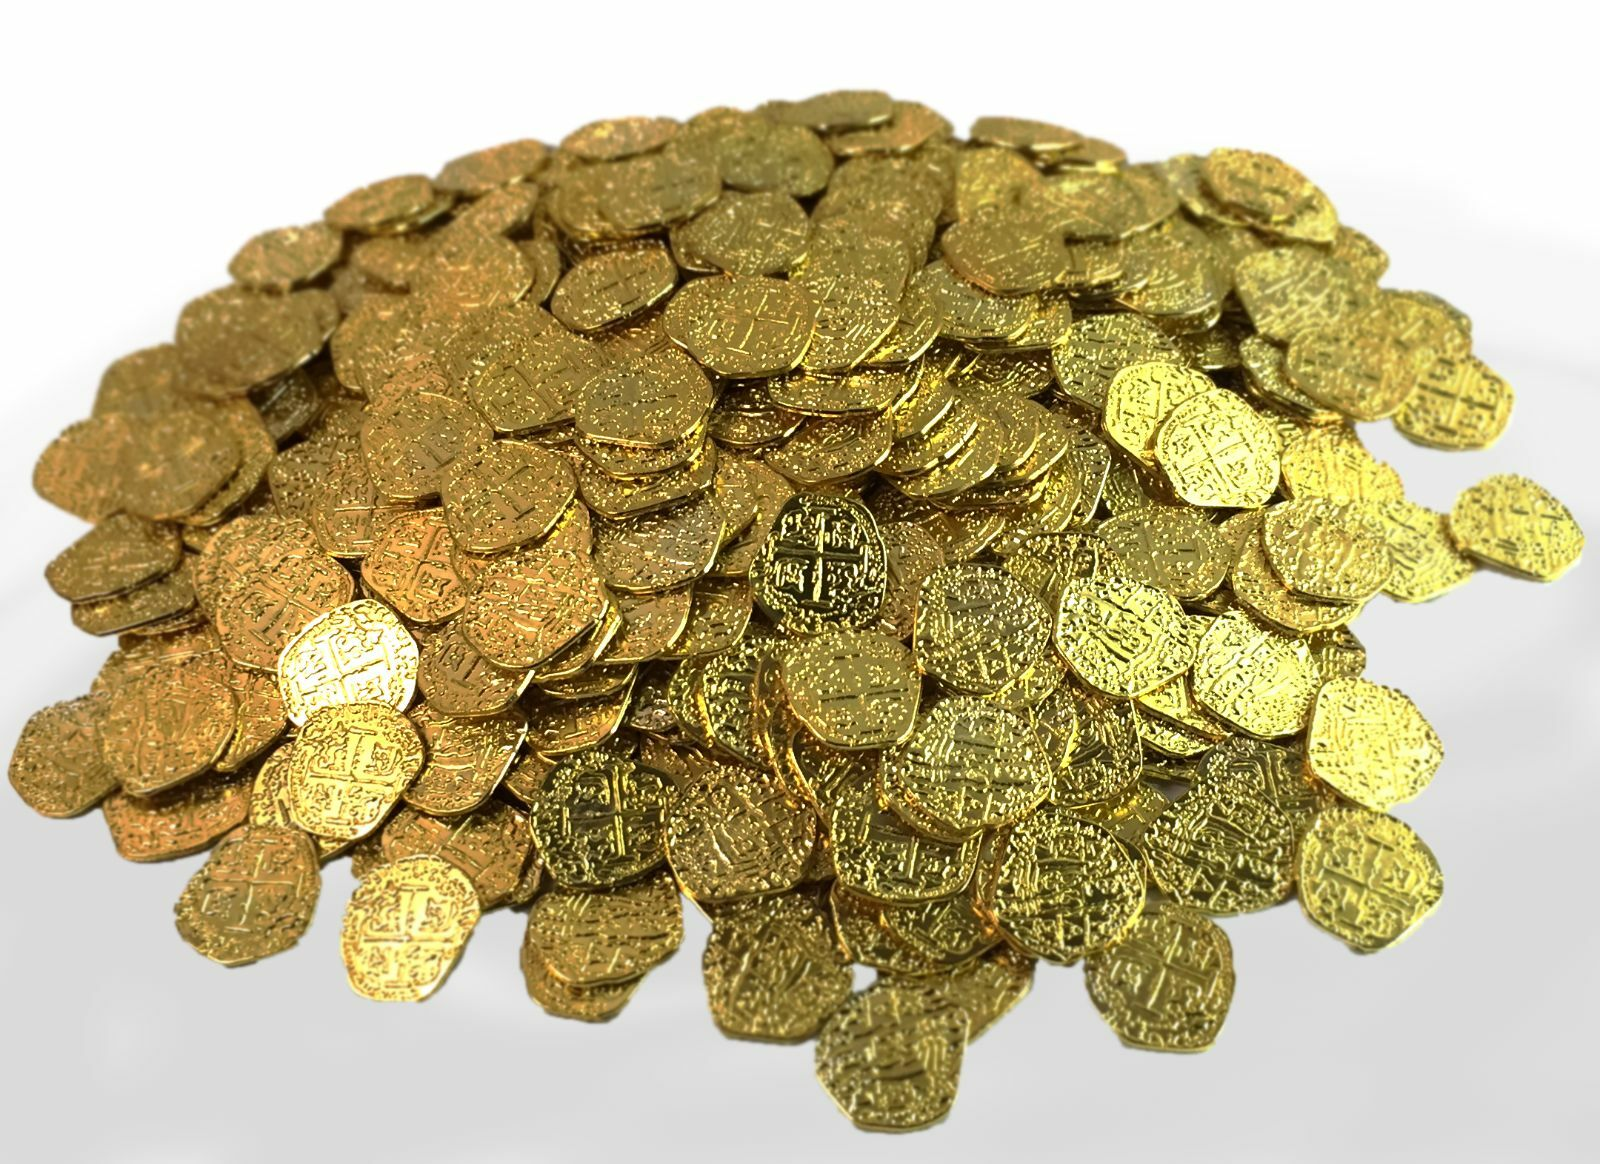 Pirate Treasure Coins - 500 Metal Gold ColGoldt Doubloon Props